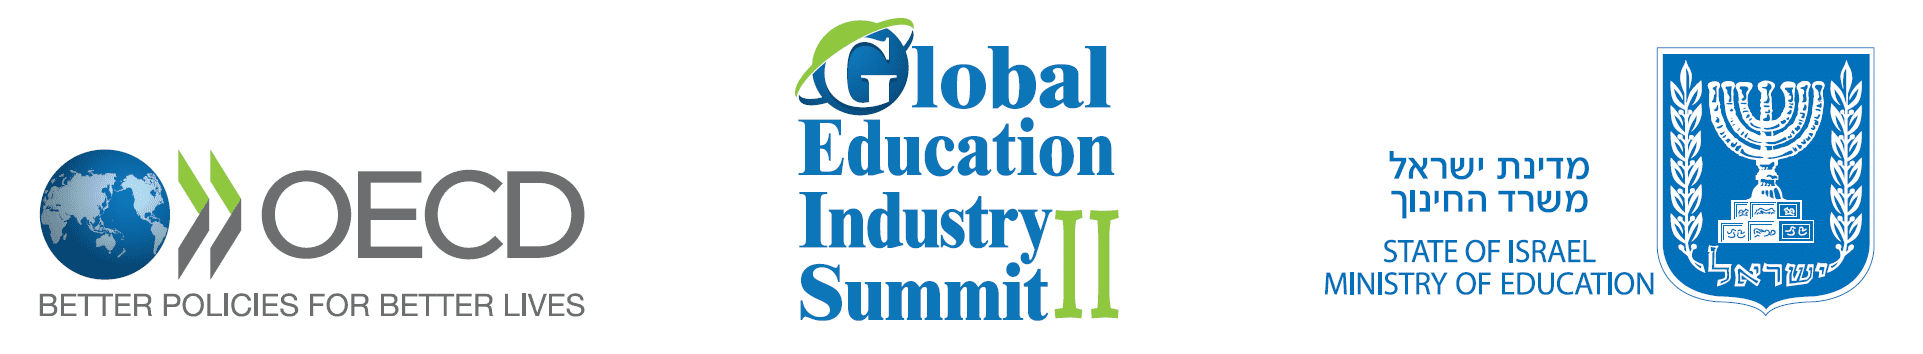 Global Education Industry Summit